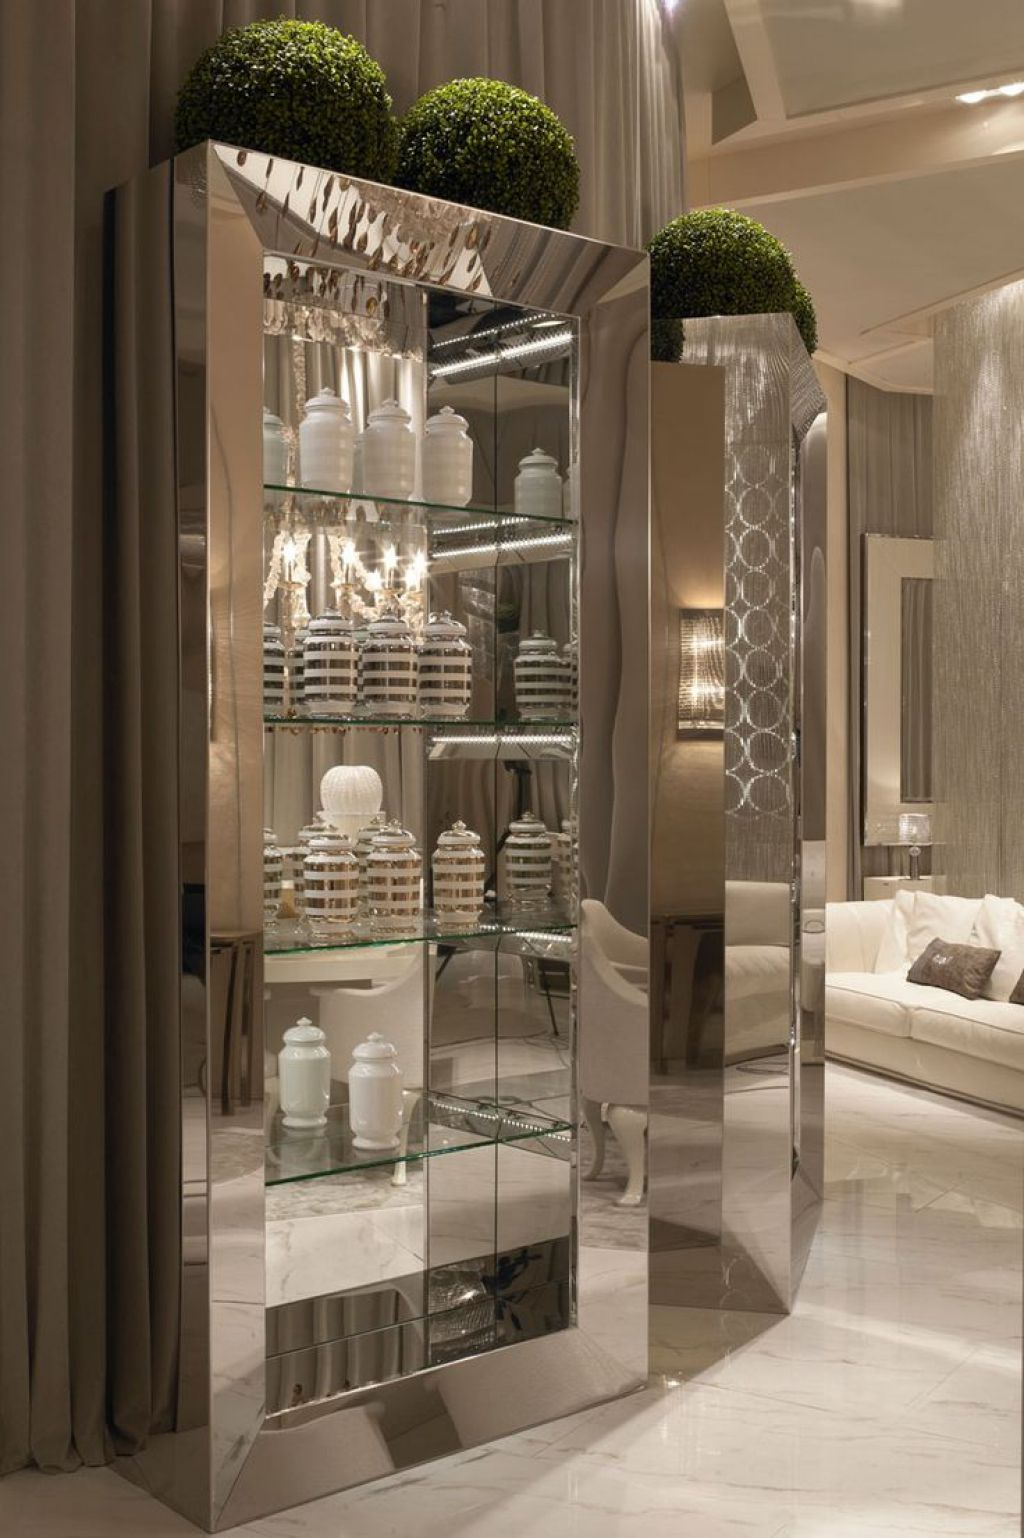 32 Best Beach House Interior Design Ideas And Decorations For 2020: Display Your Collections In A Beautiful Curio Cabinet